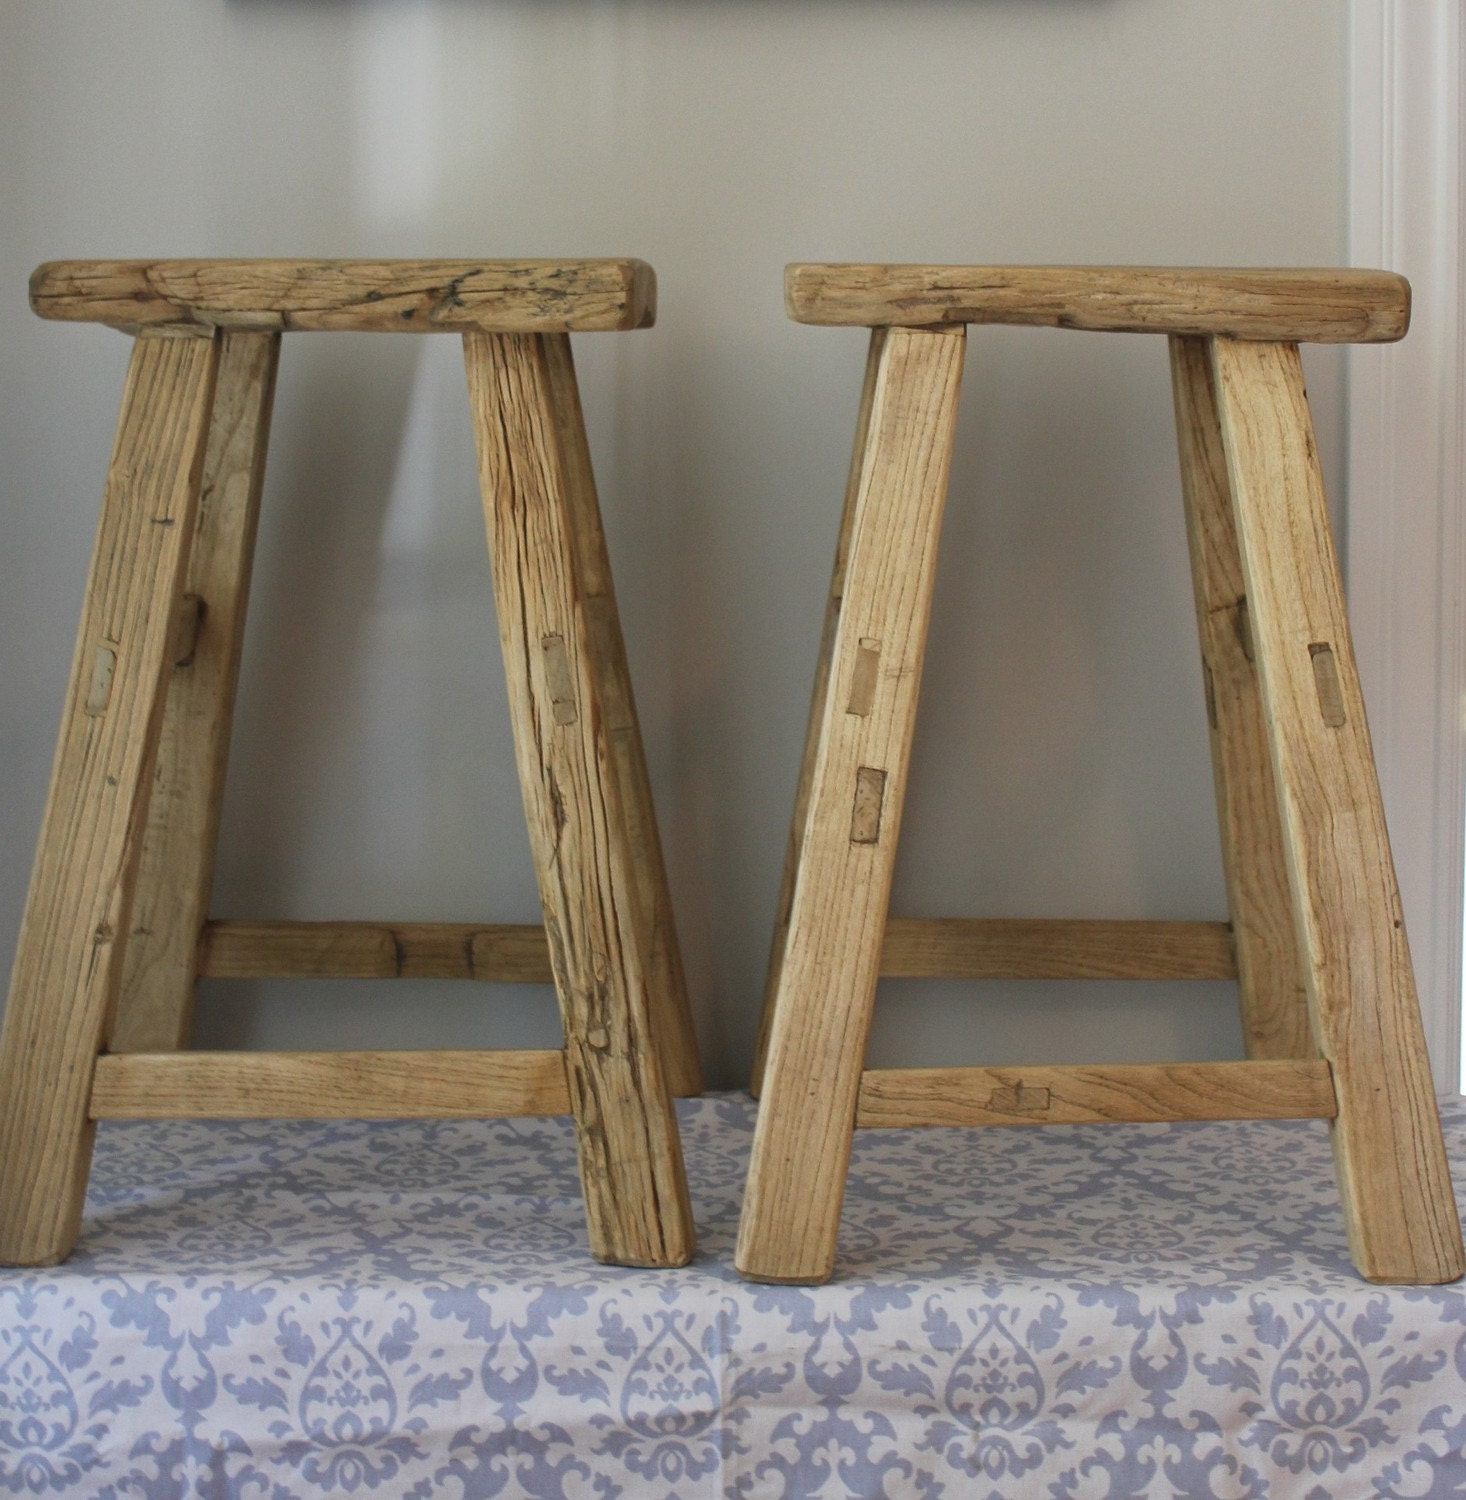 Pair Of Reclaimed Wood Counter Height Stools - Reclaimed Wood Counter Stools WB Designs